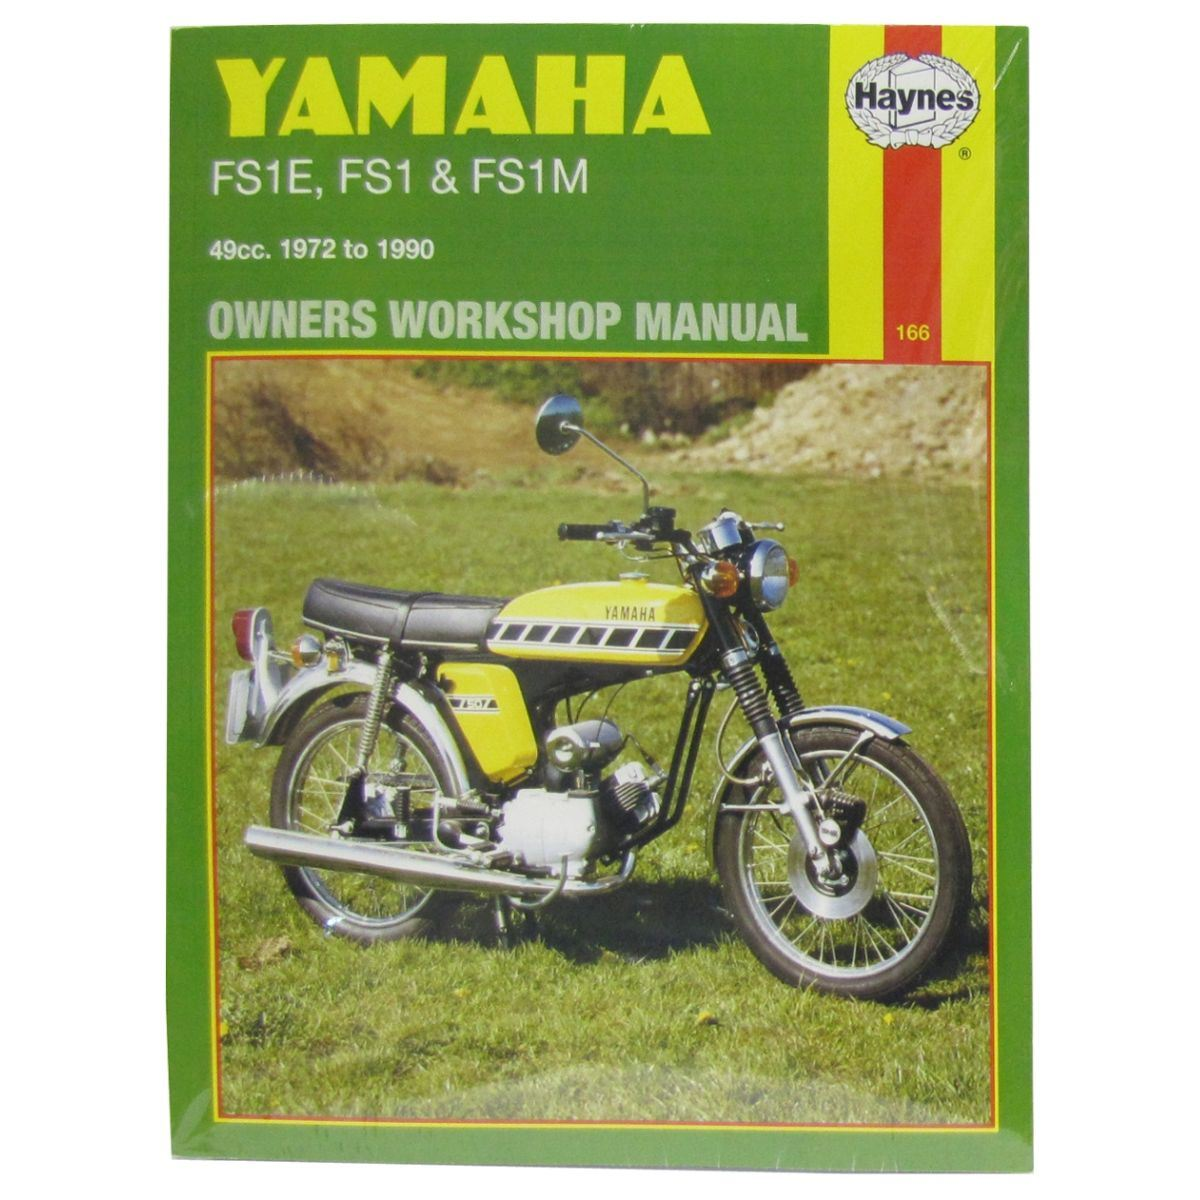 Yamaha Fs1e Wiring Diagram Opinions About 1972 175 Manual Haynes For 1988 Ebay Rh Co Uk Fs1 2017 Model